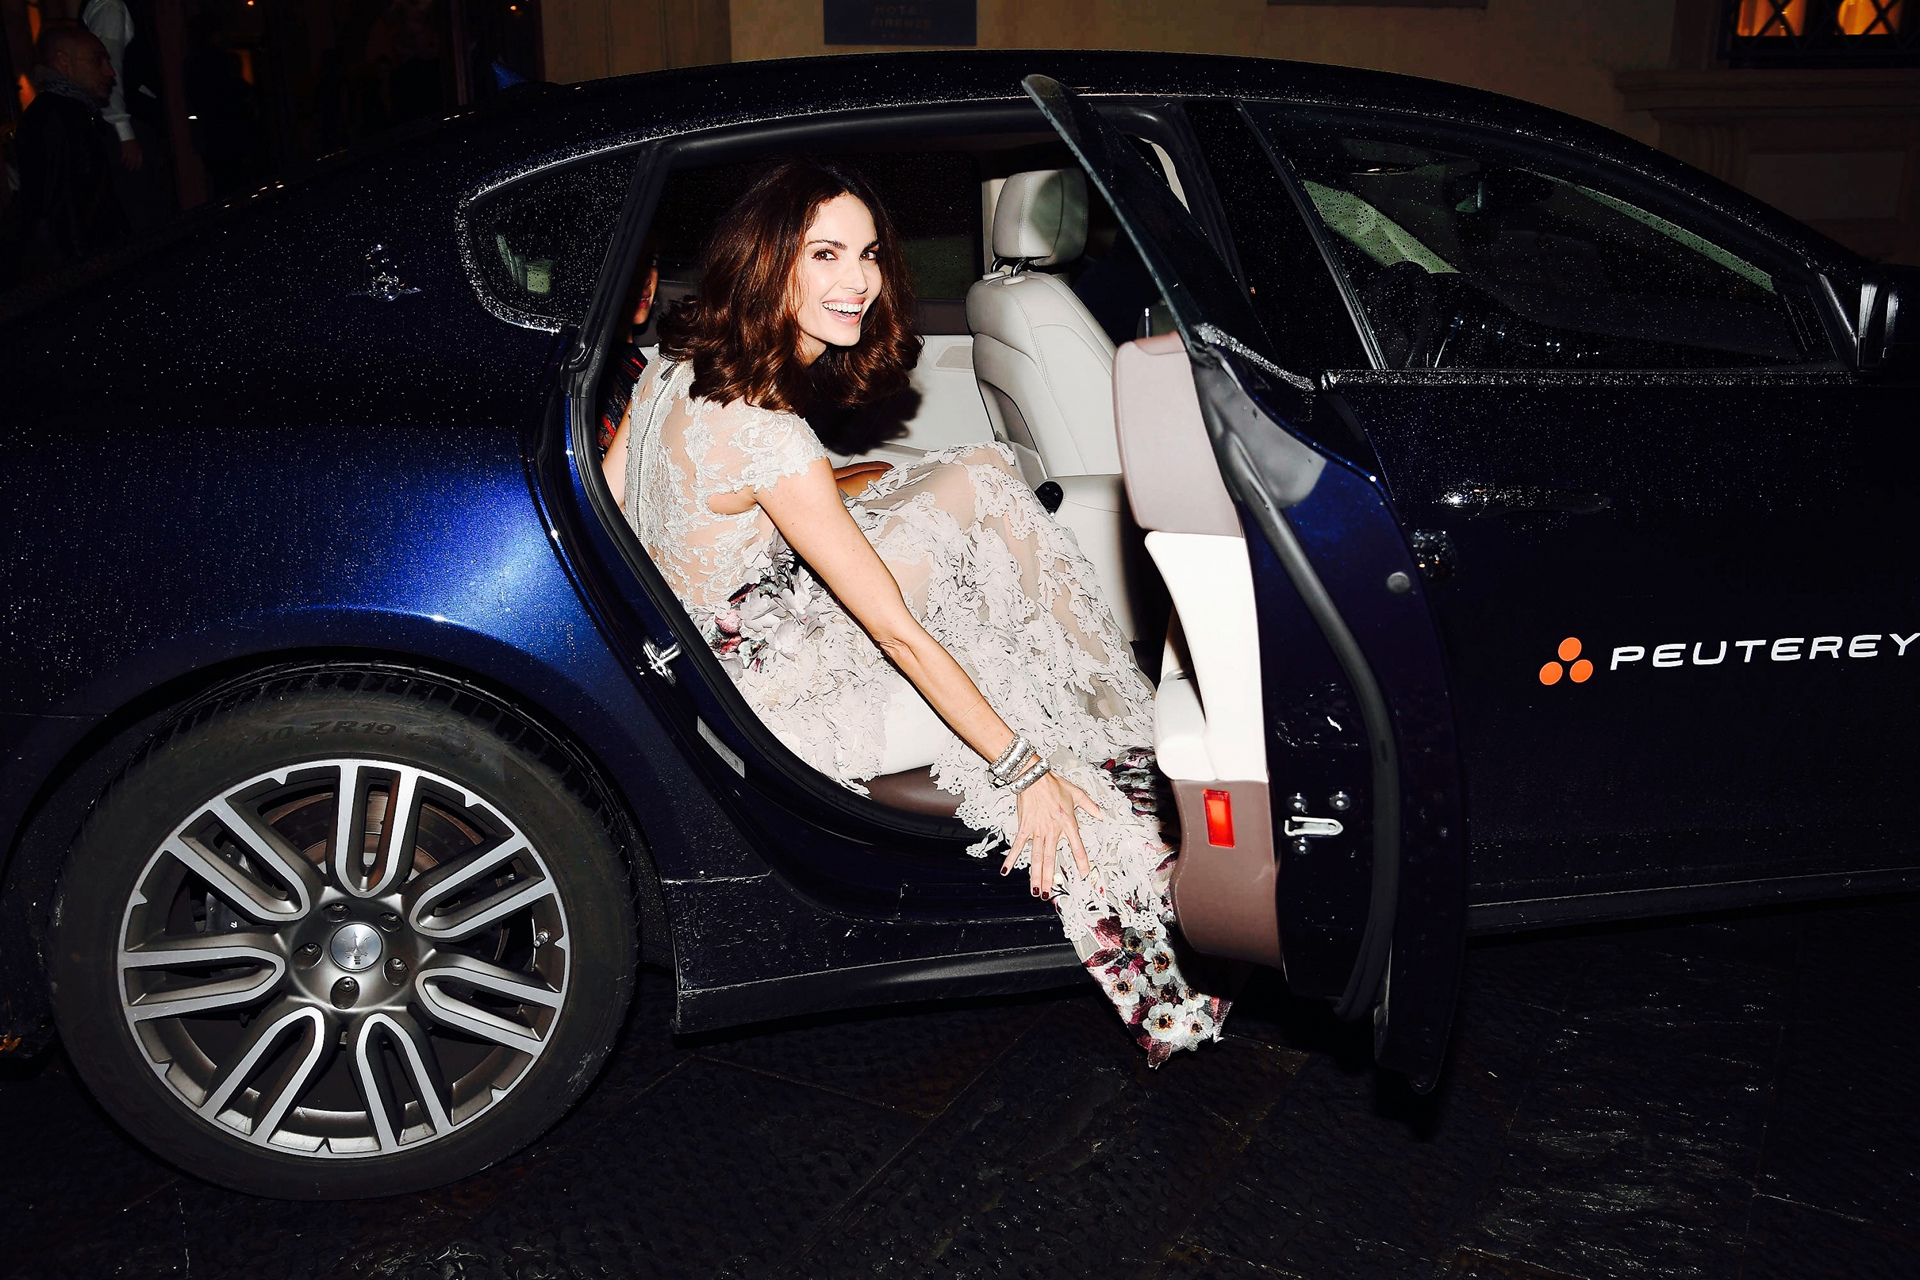 Eugenia Silva with the Quattroporte arrives at the INFERNO Premiere © Fiat Chrysler Automobiles N.V.